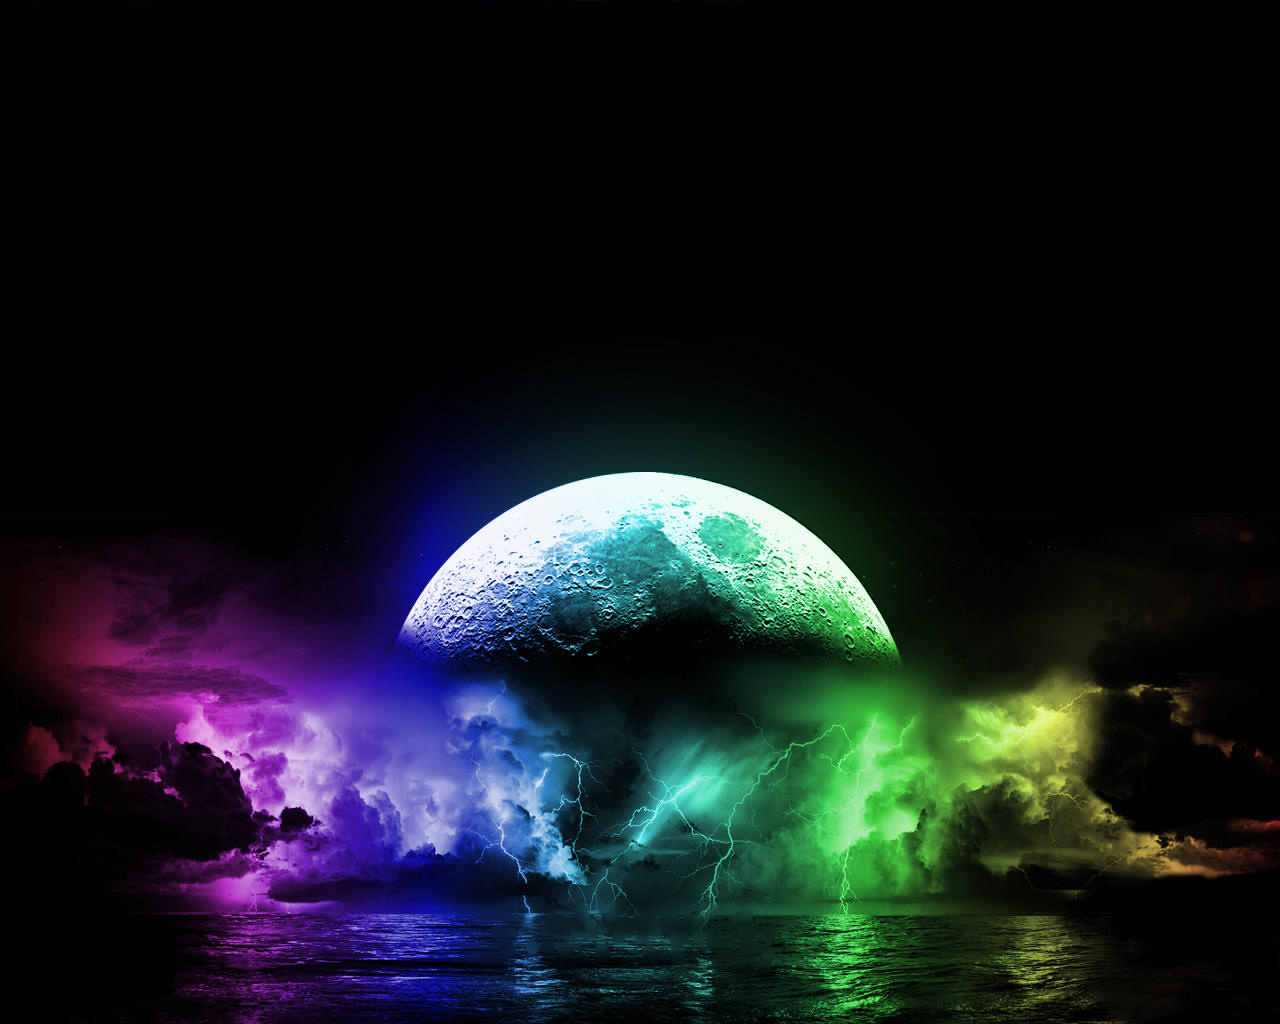 Cool wallpaper download wallpaper A really cool and colorful moon 1280x1024